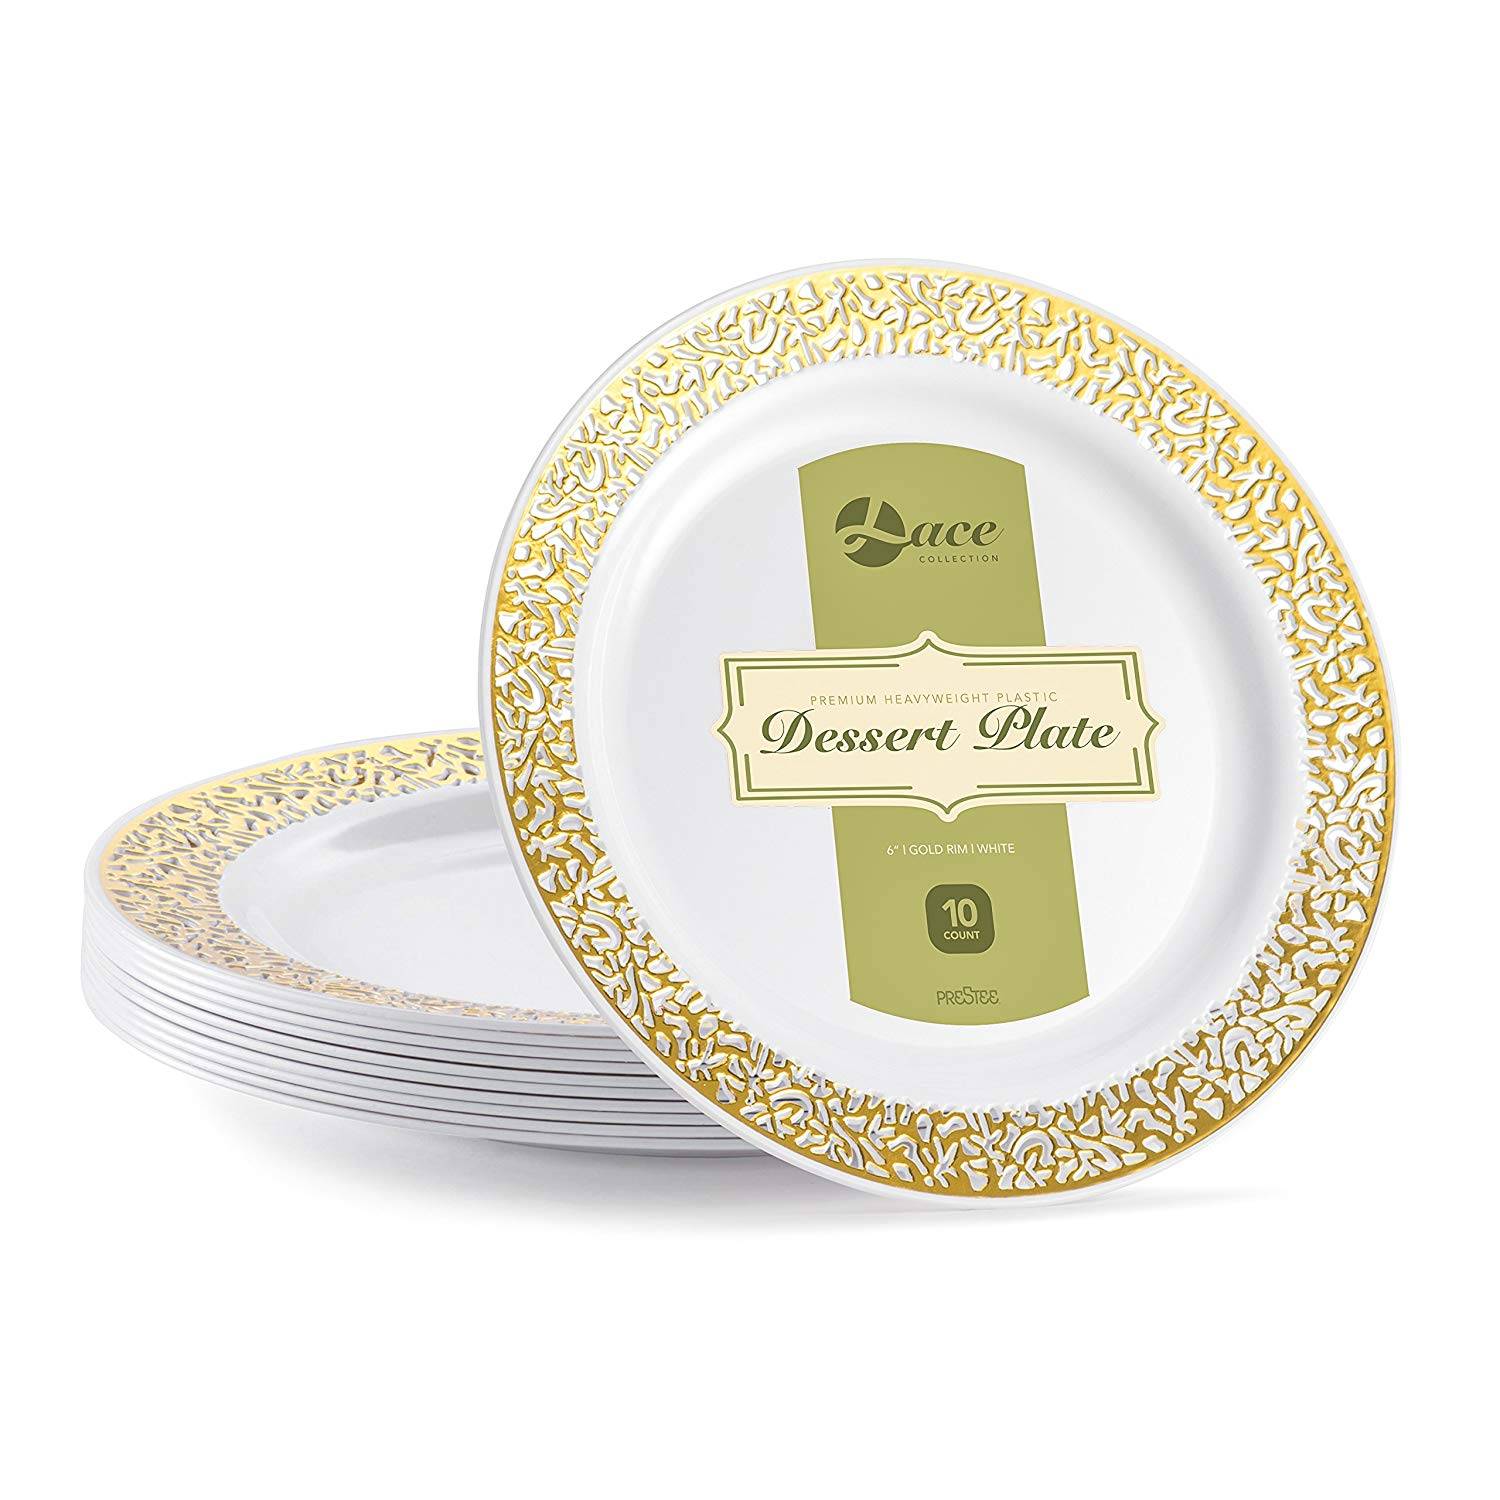 LACE PLASTIC PARTY DISPOSABLE PLATES | 6 Inch Hard Round Wedding Dessert Plates | White with Gold Rim, 40 Pack | Elegant & Fancy Heavy Duty Party Supplies Plates for all Holidays & Occasions